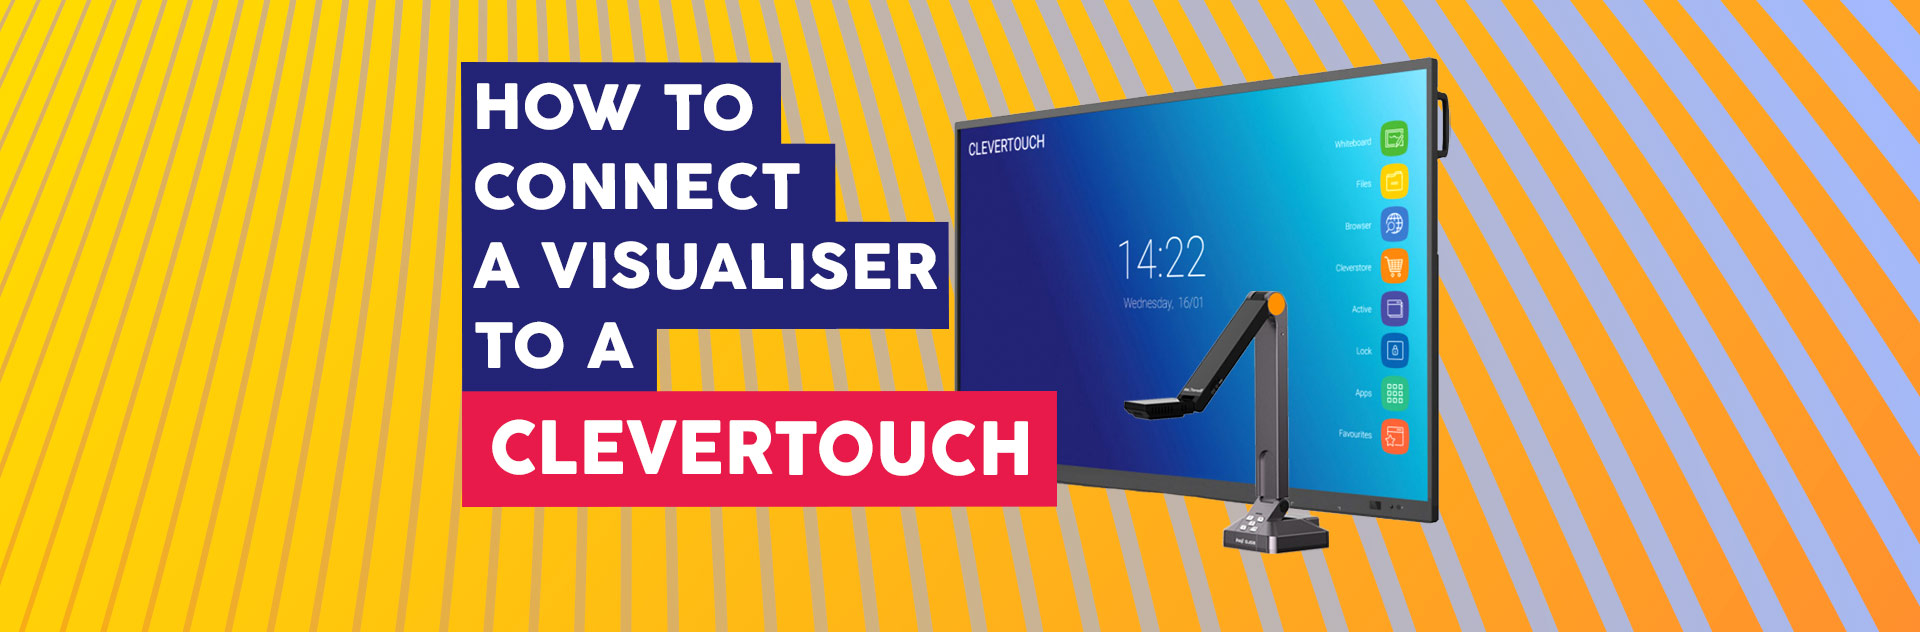 How Connect Visualiser Clevertouch - Interactive Flatscreen Shools Ireland